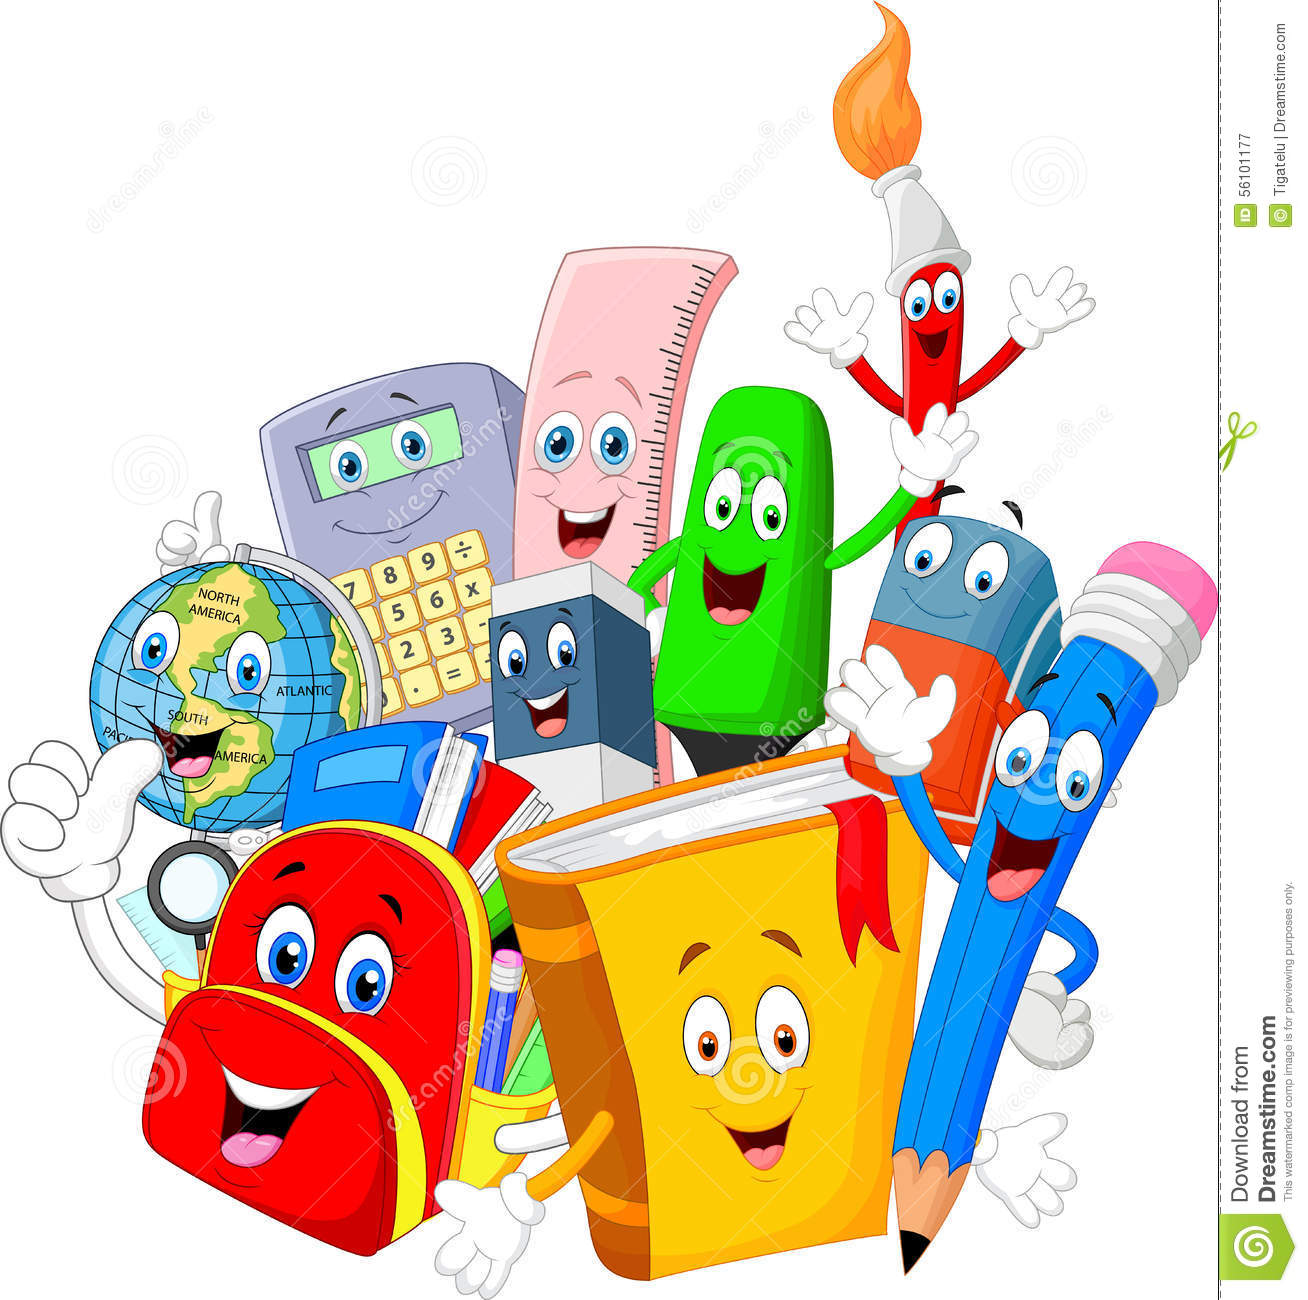 Stock Illustration Cartoon Collection Stationery Giving Thumb Up Illustration Image56101177 on pen eraser